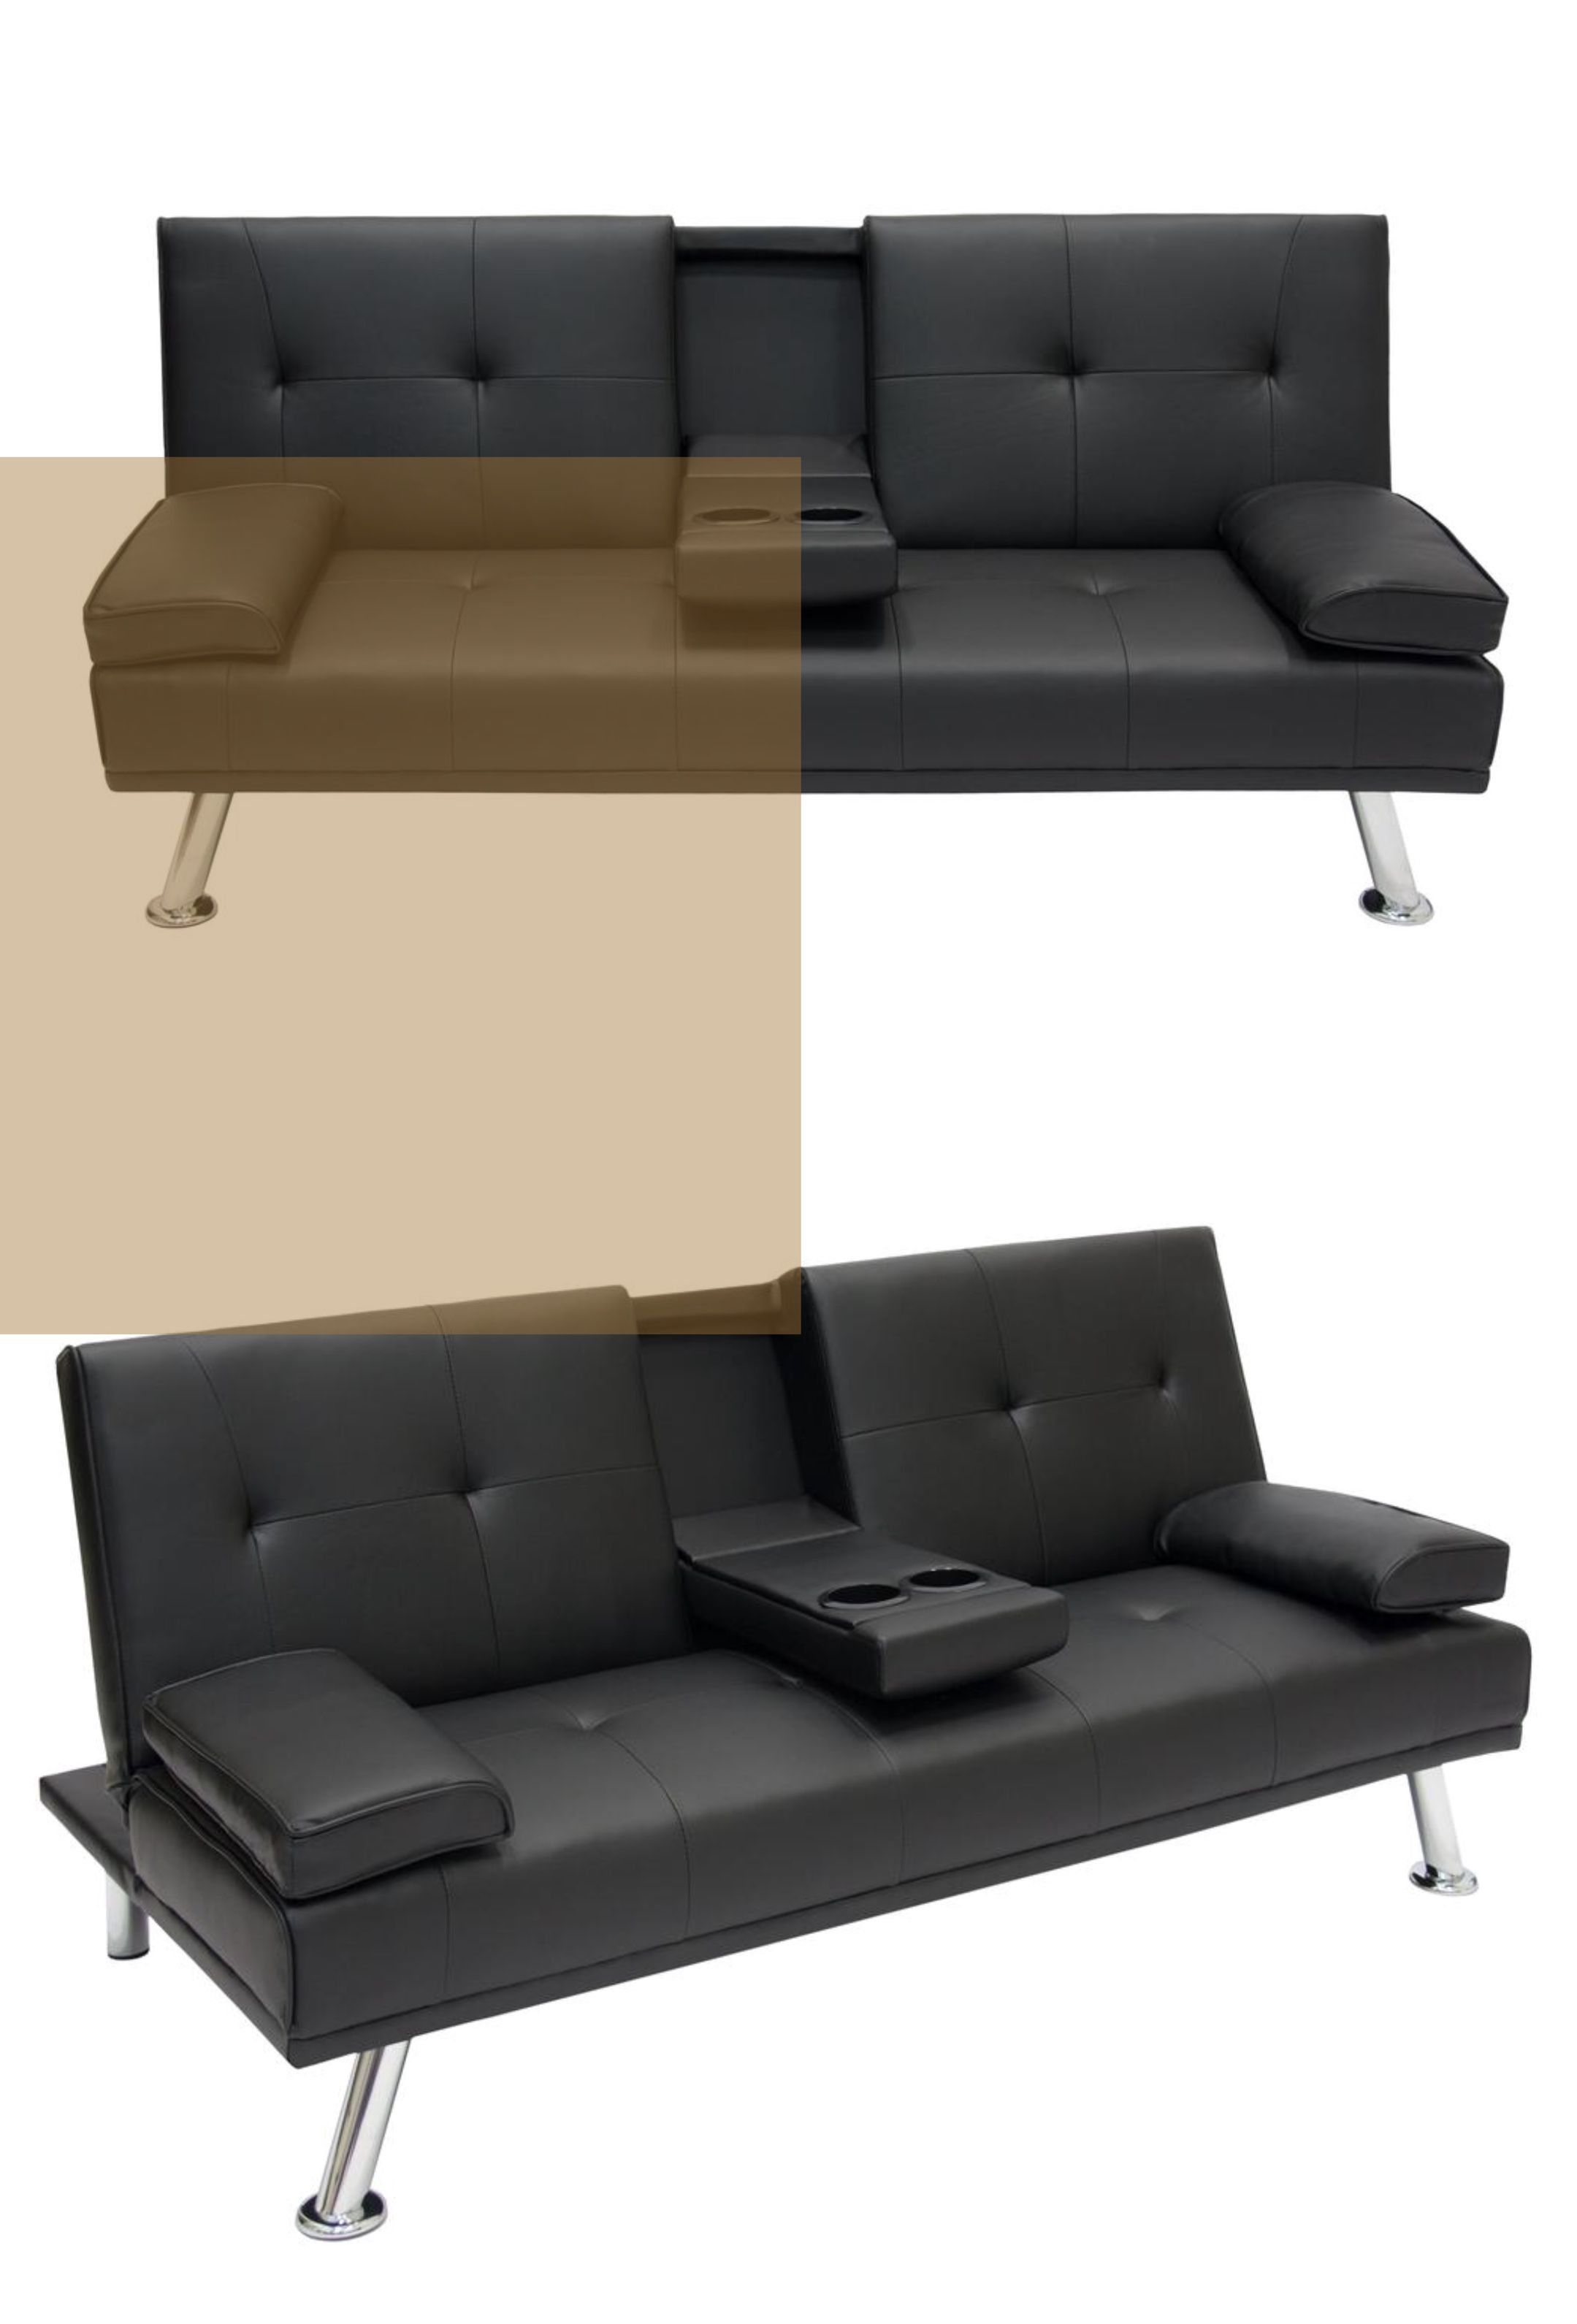 From Movie Night To Sleep Tight This Faux Leather Futon Is Ready For Anything With Built In Cupholders And Armrests That Double As Pill Leather Futon Black Futon Futon Sofa